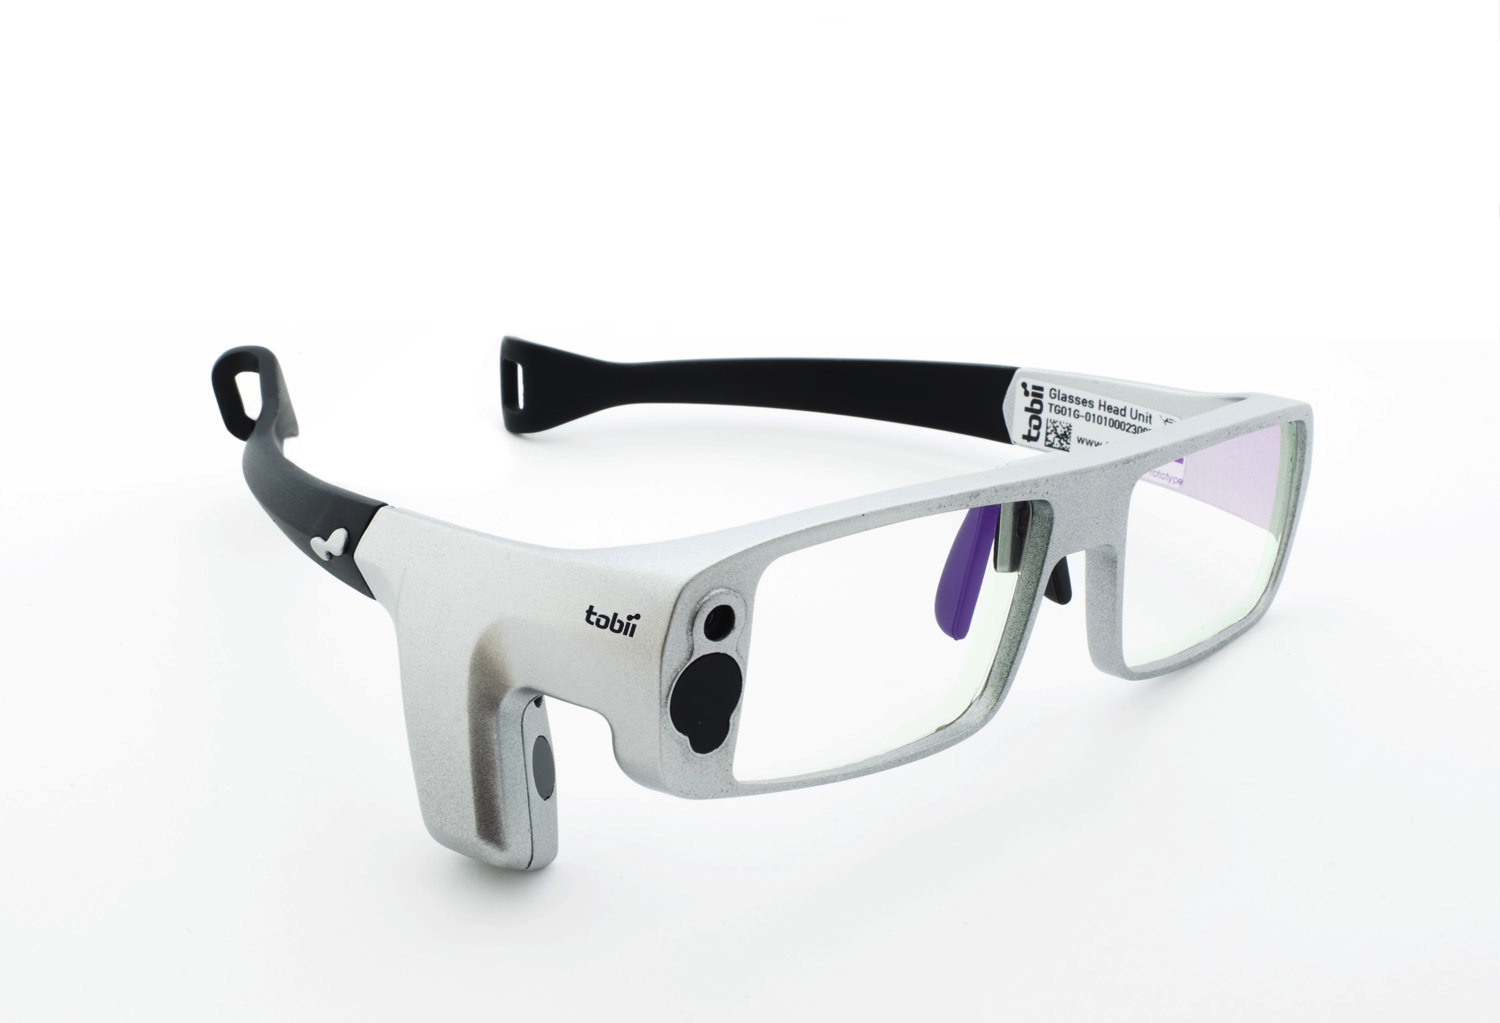 Kids Learning Tablet >> Tobii eyesight controlled computer to be Google Glass partner?